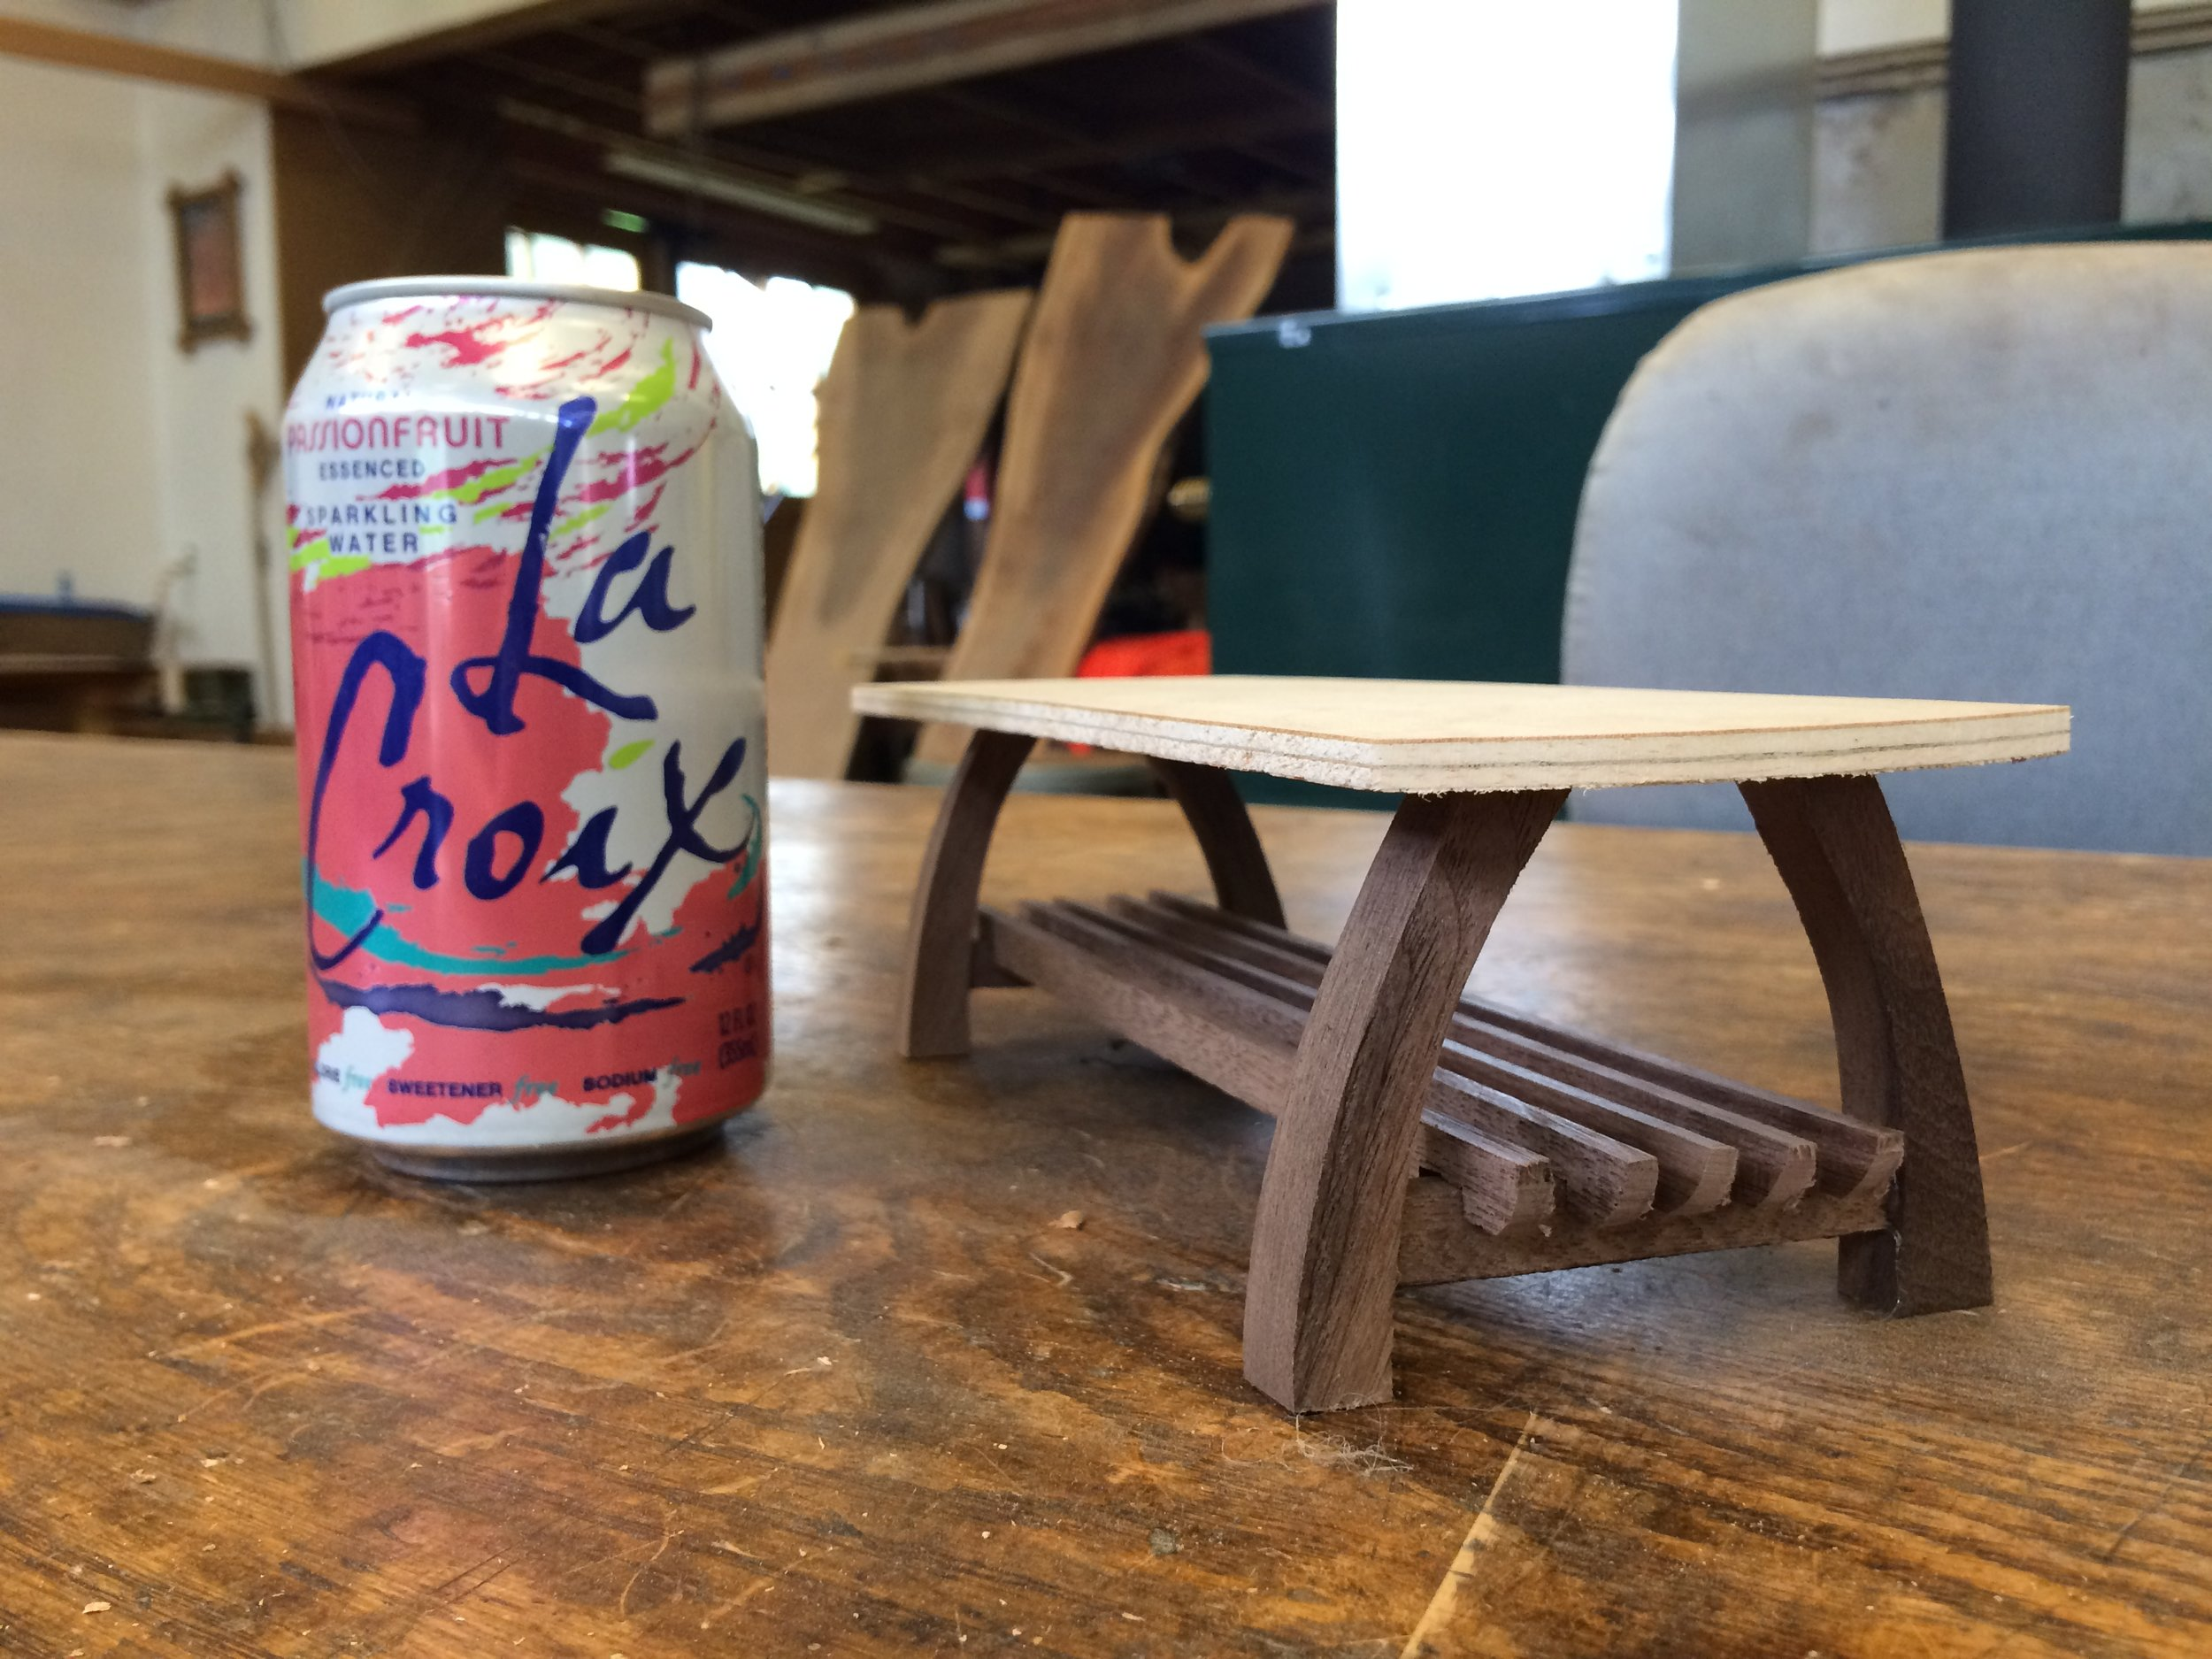 Tiny models (La Croix for scale, and deliciousness) are fun